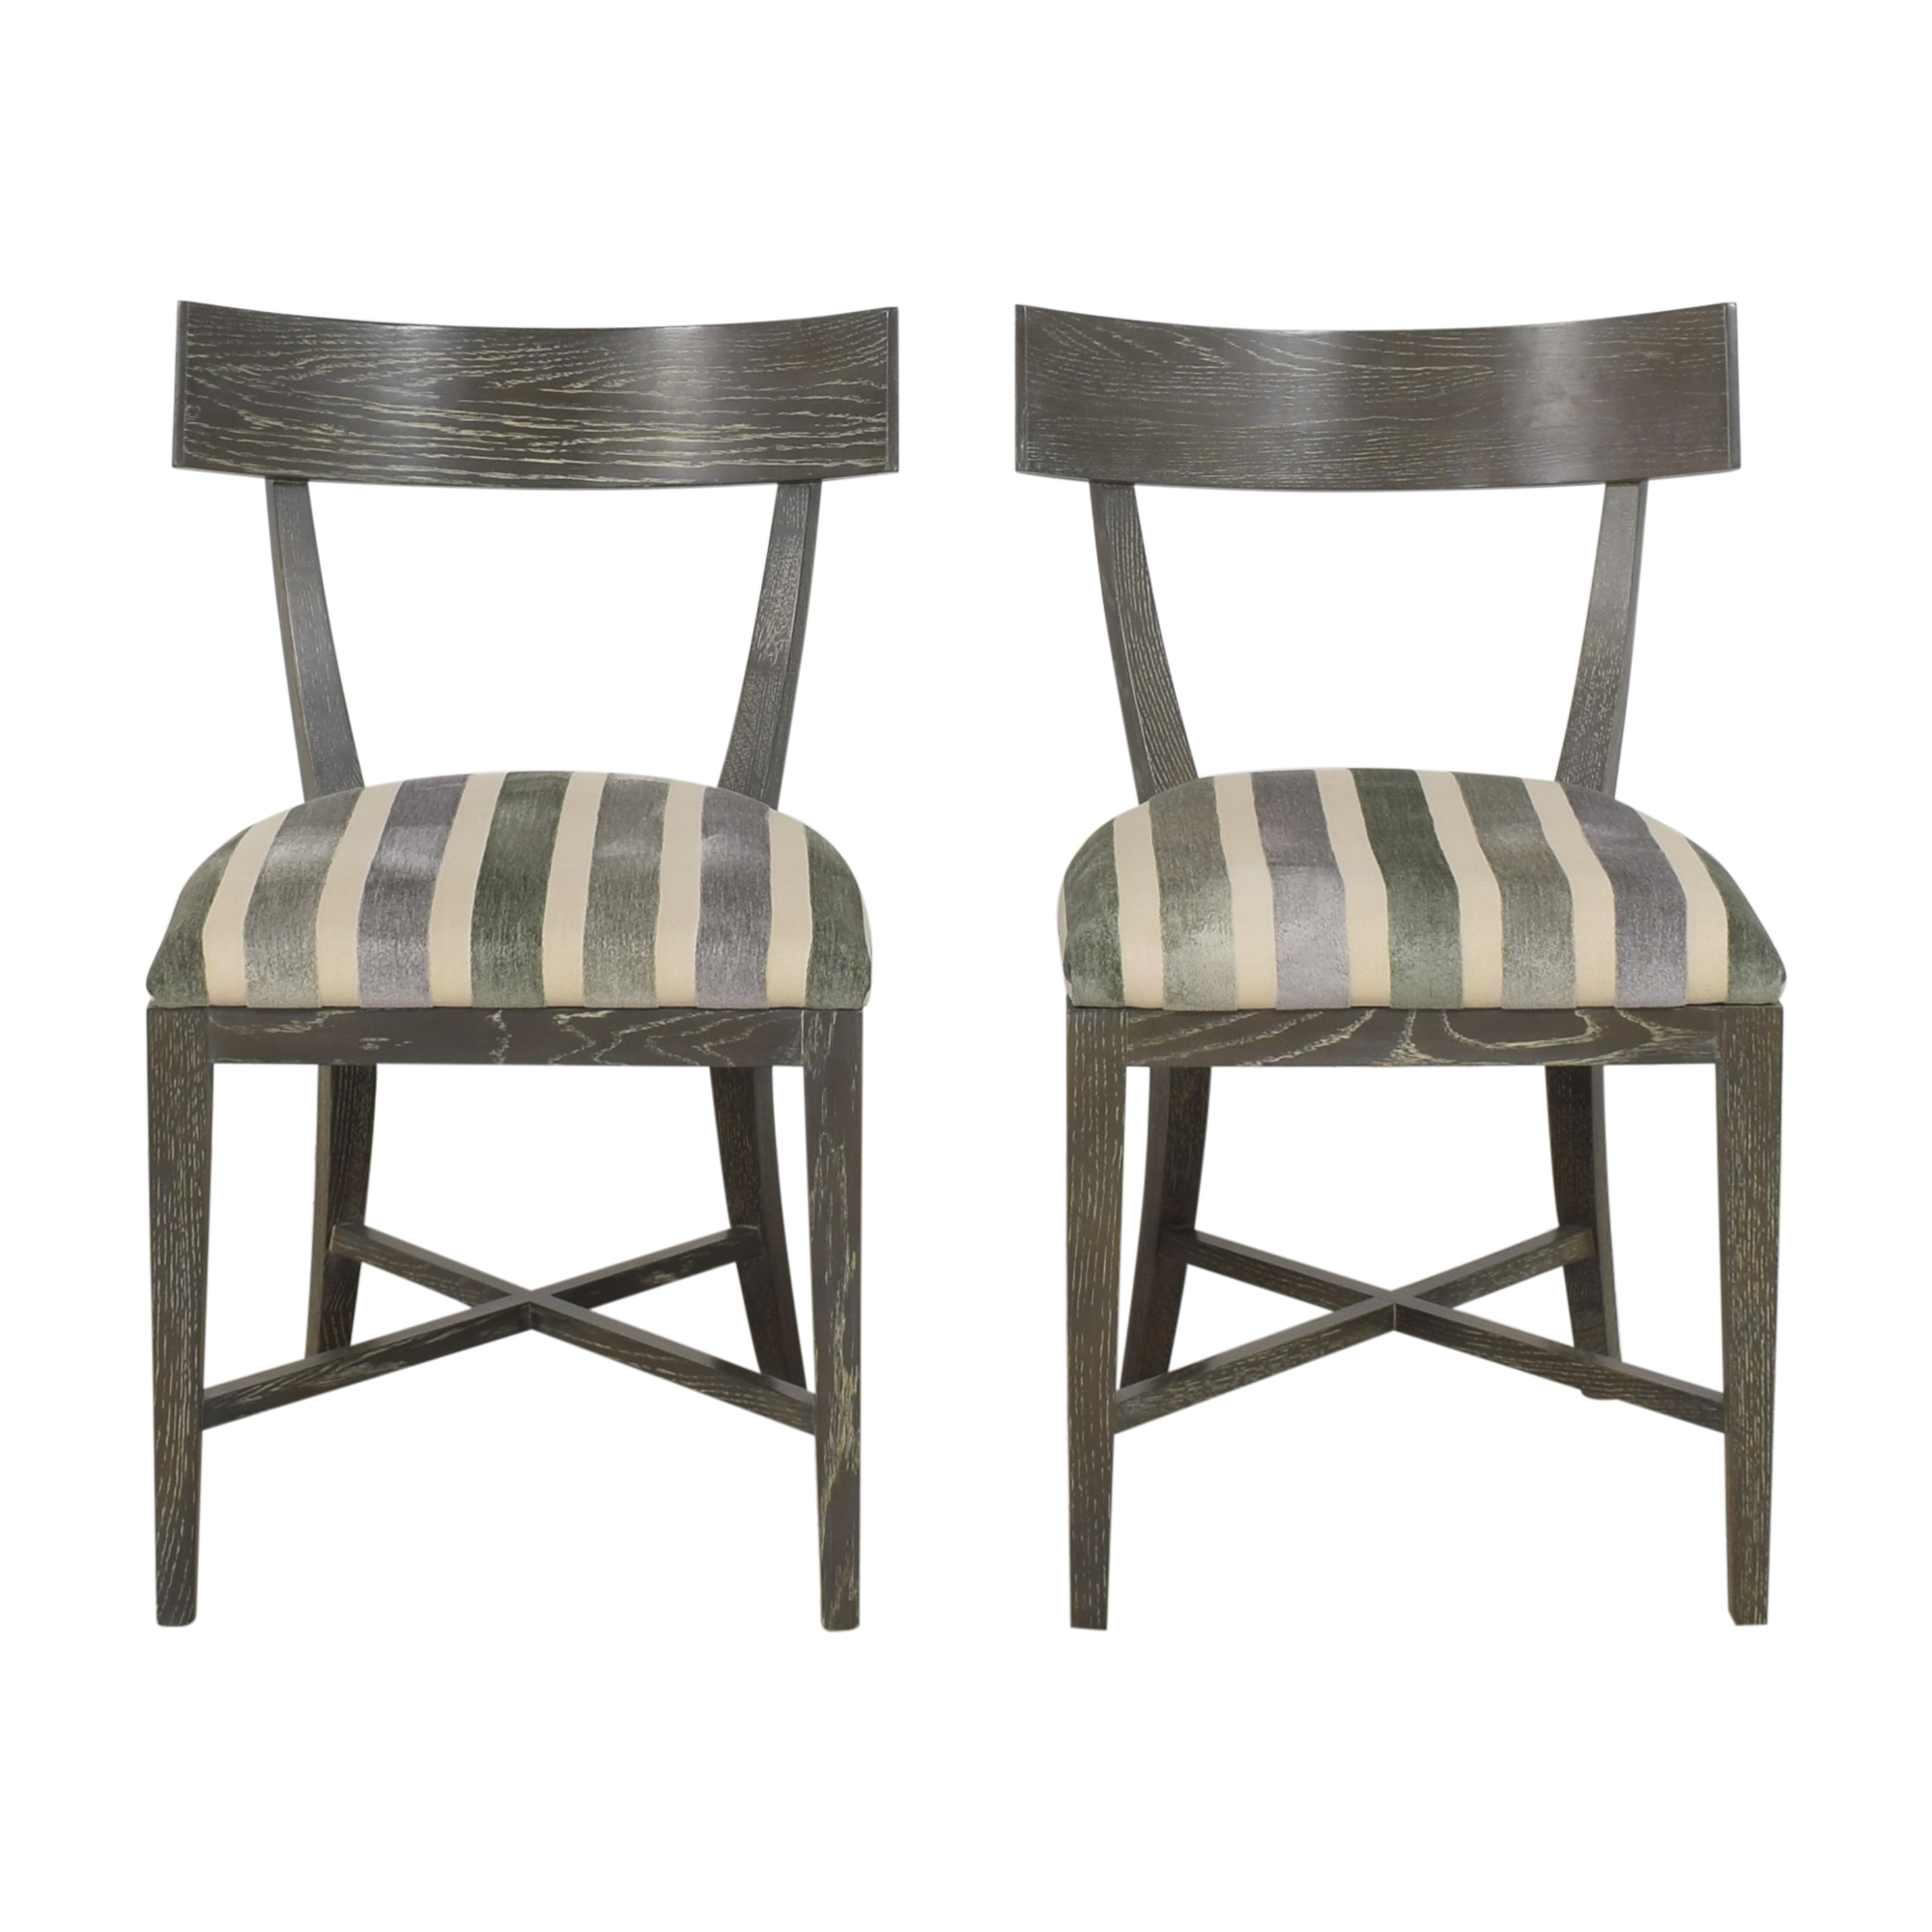 Arteriors Arteriors Caden Dining Chairs Chairs